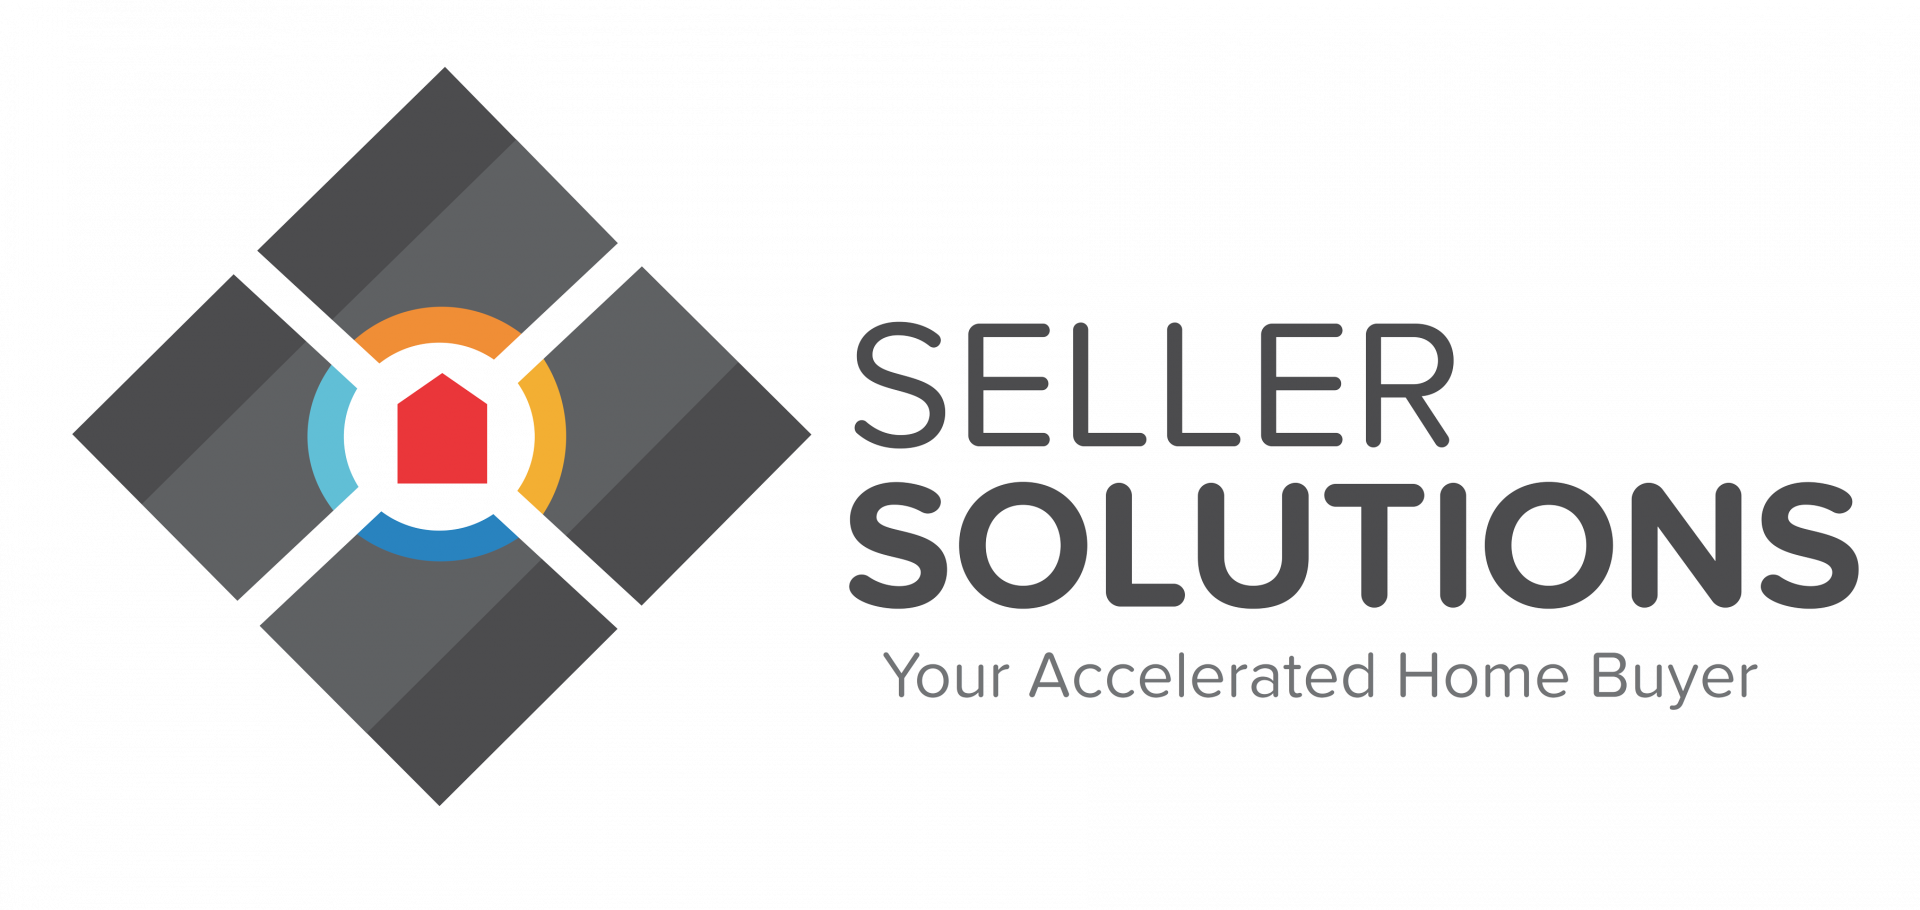 Property Seller Solutions, Louisville KY logo